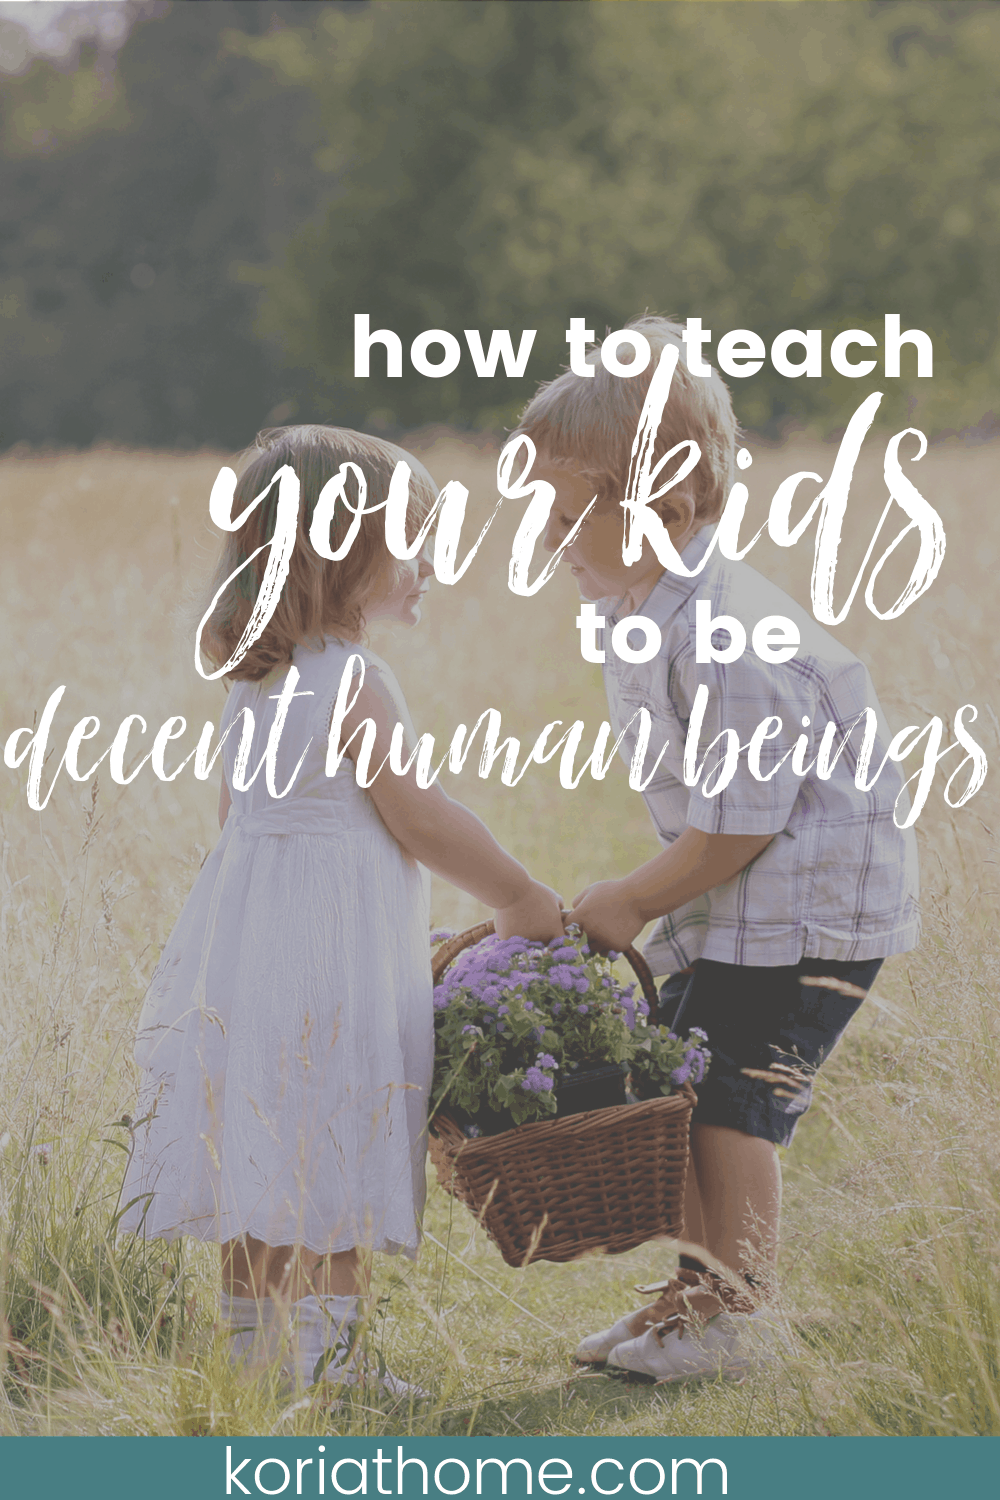 How to Teach Your Kids to Be Decent Human Beings 1